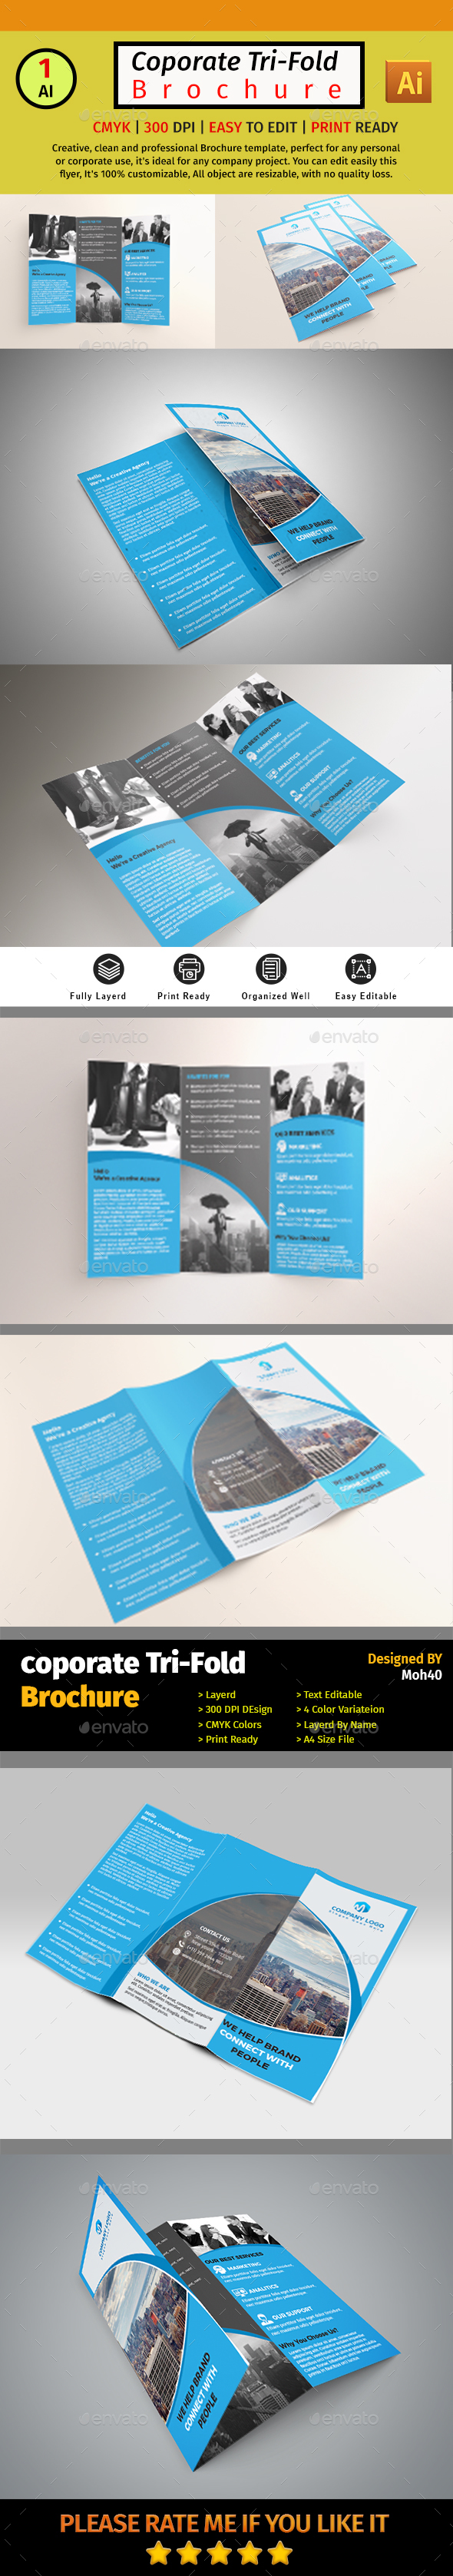 A4 Corporate Business Flyer #017 - Corporate Brochures